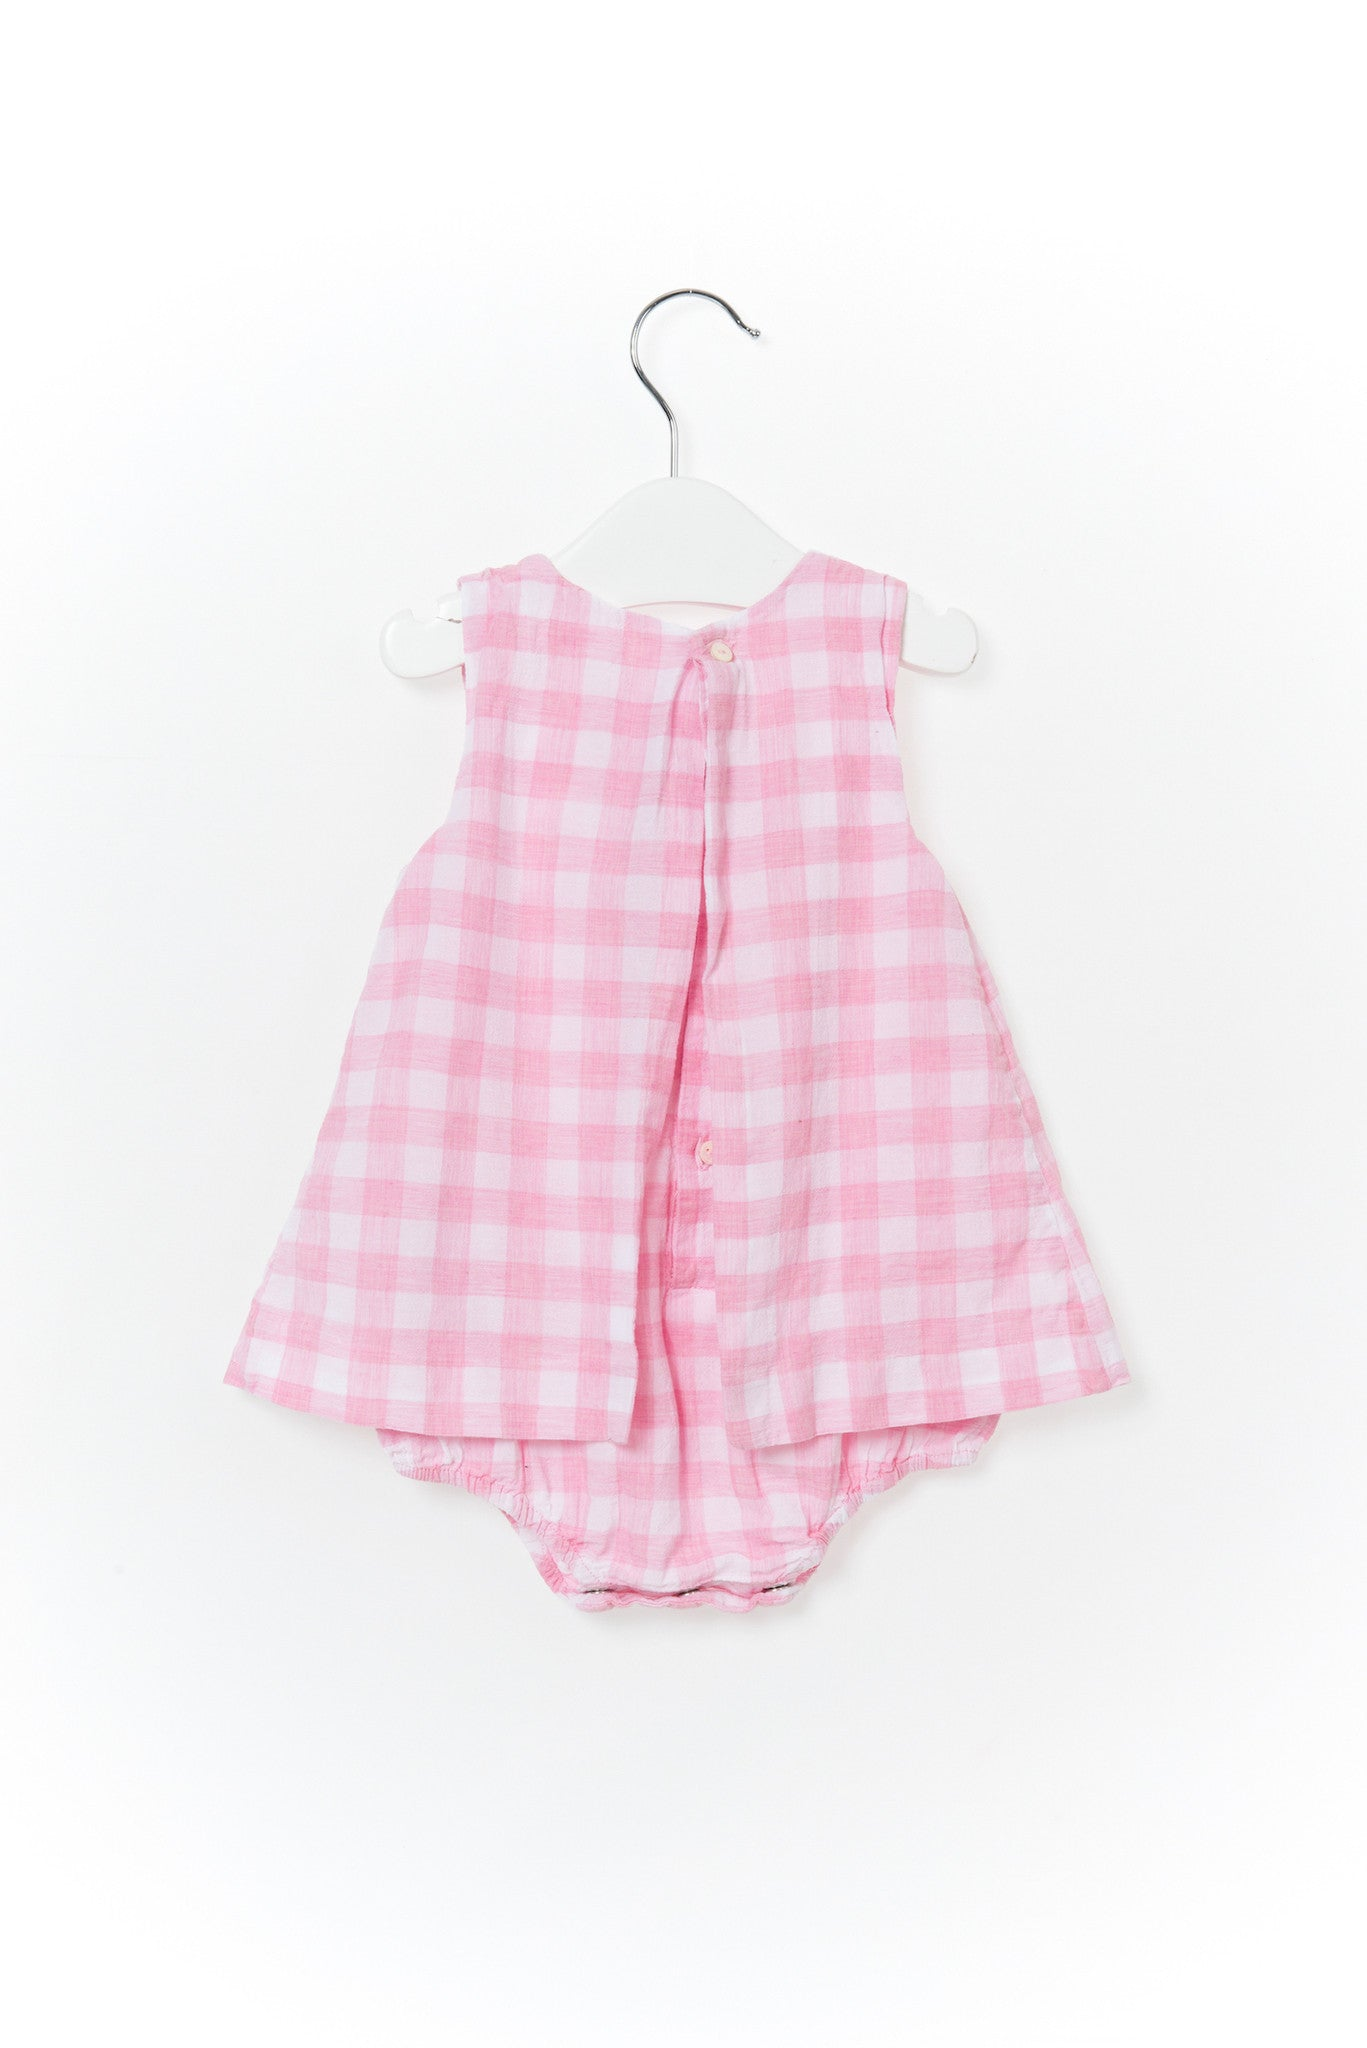 10001336 Jacadi Baby~Romper Dress 3-6M at Retykle